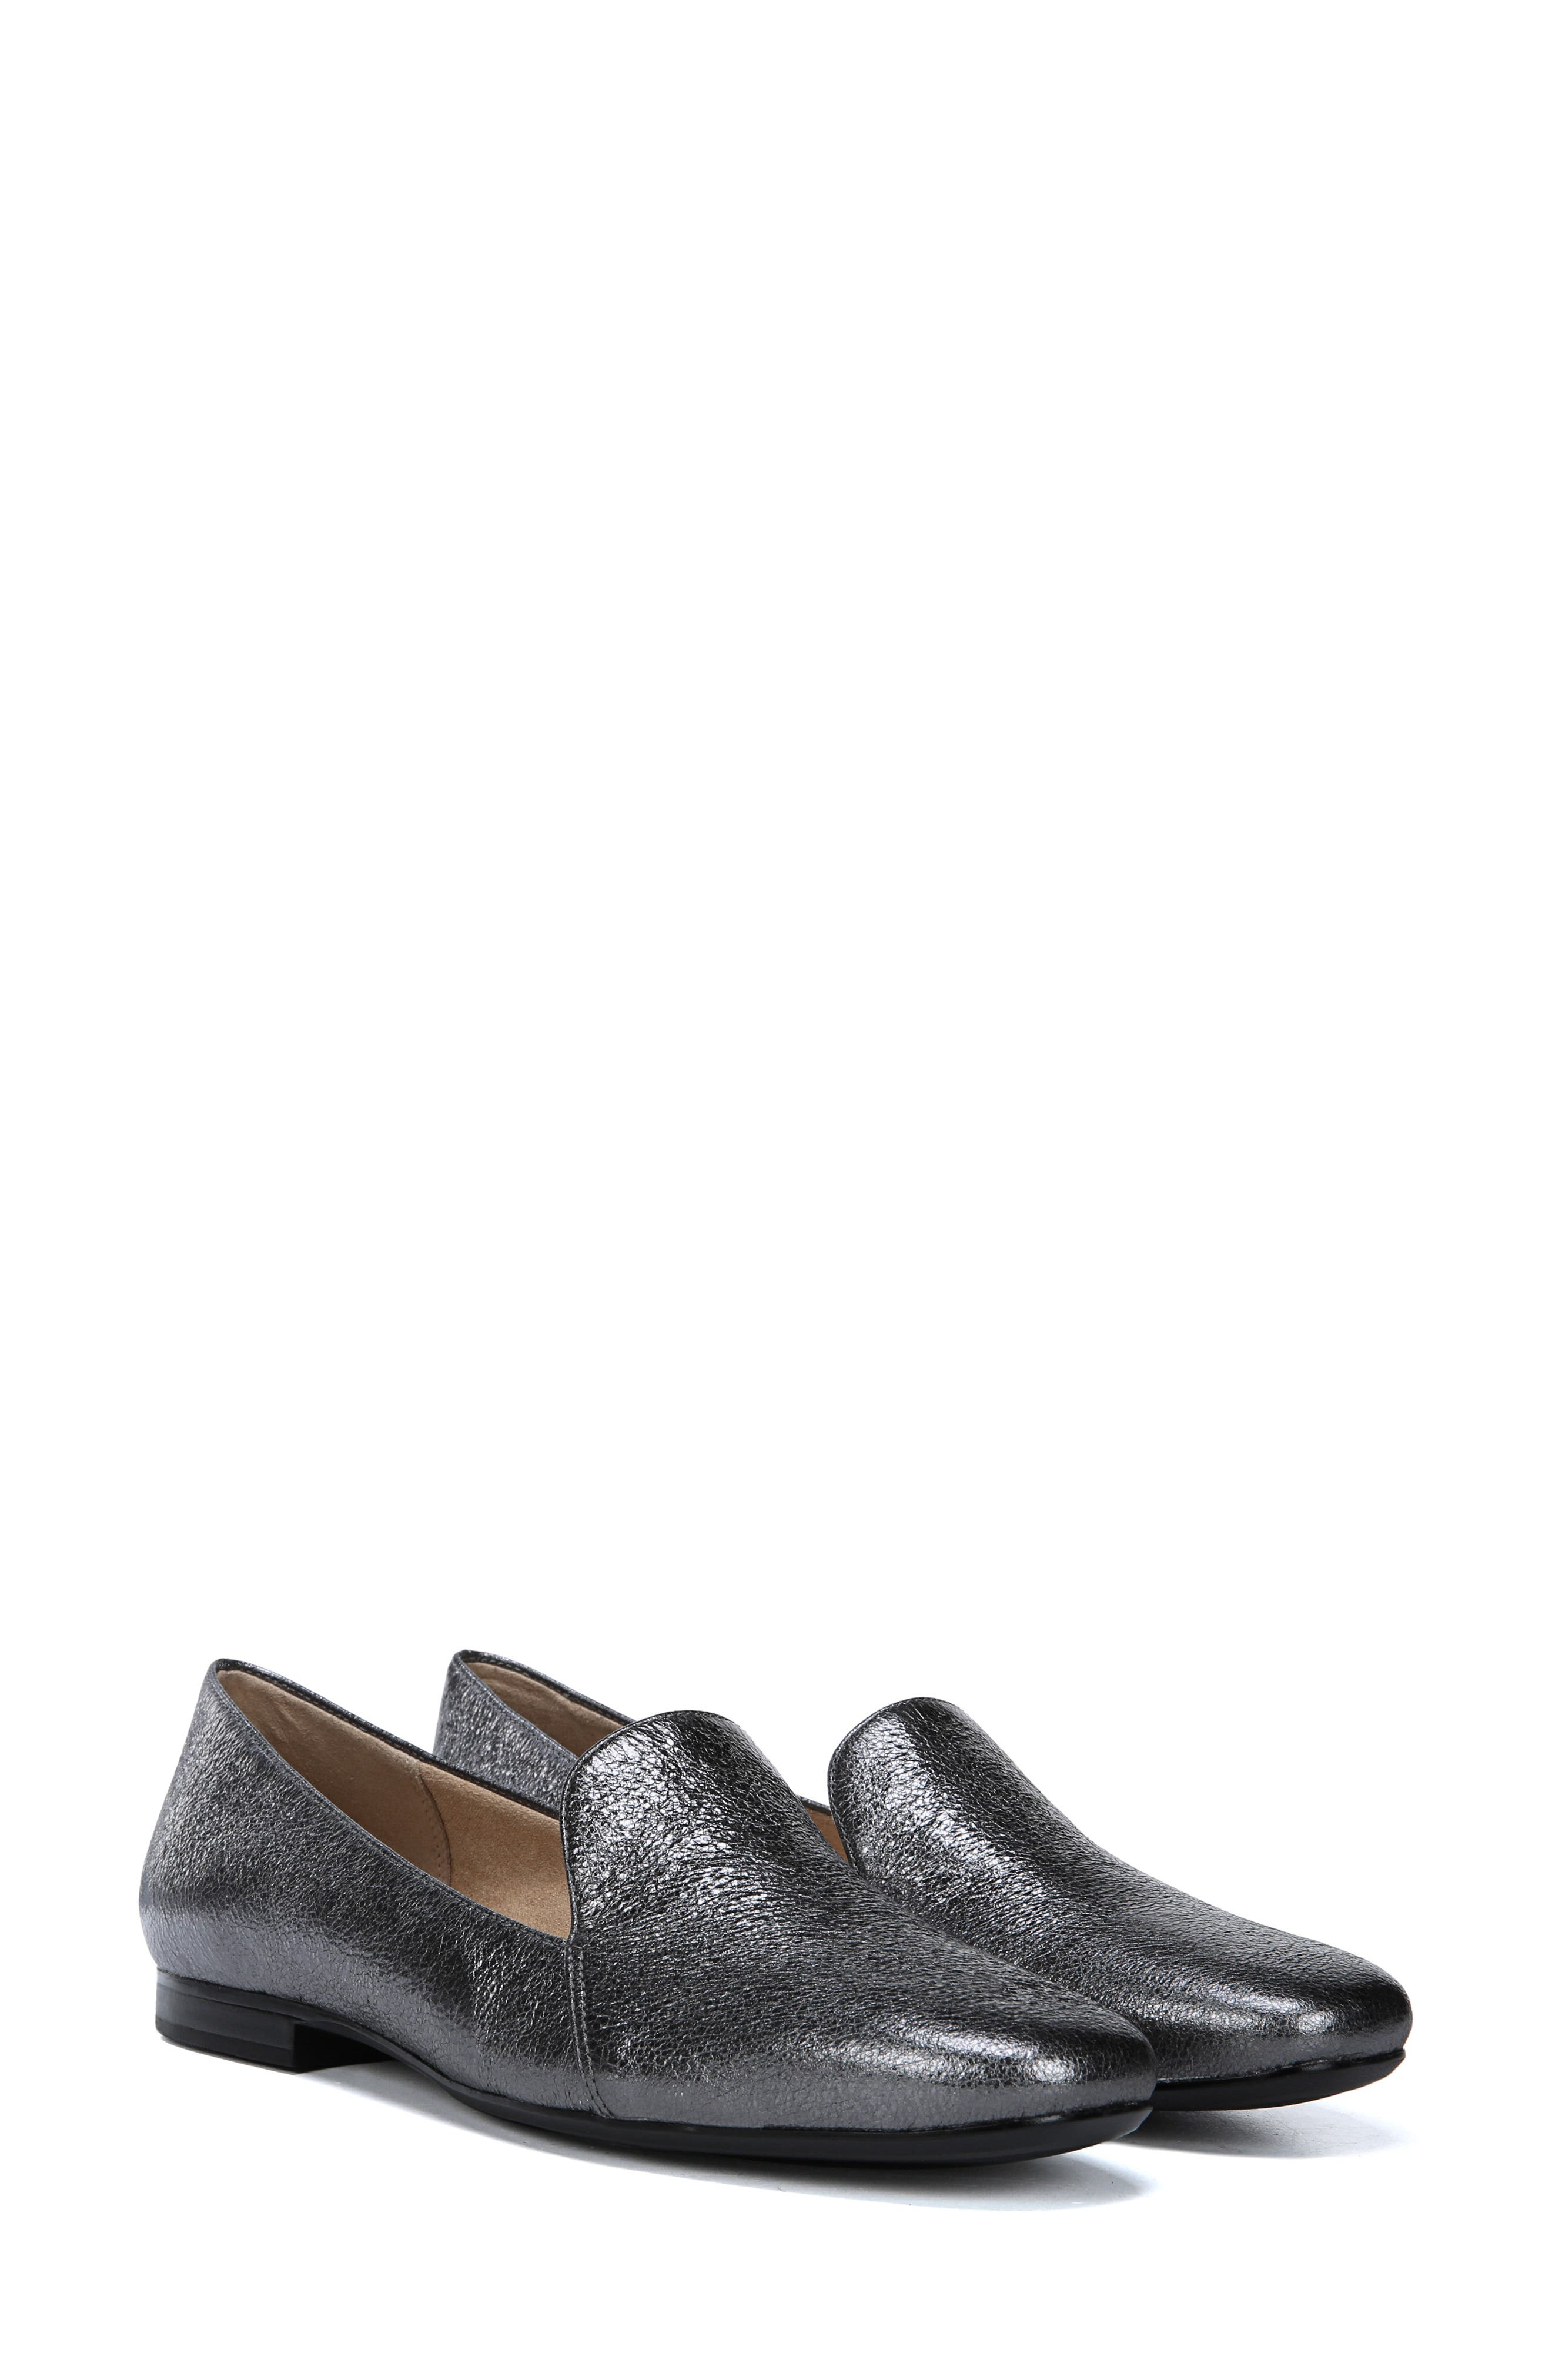 Emiline Flat Loafer,                             Alternate thumbnail 6, color,                             PEWTER LEATHER